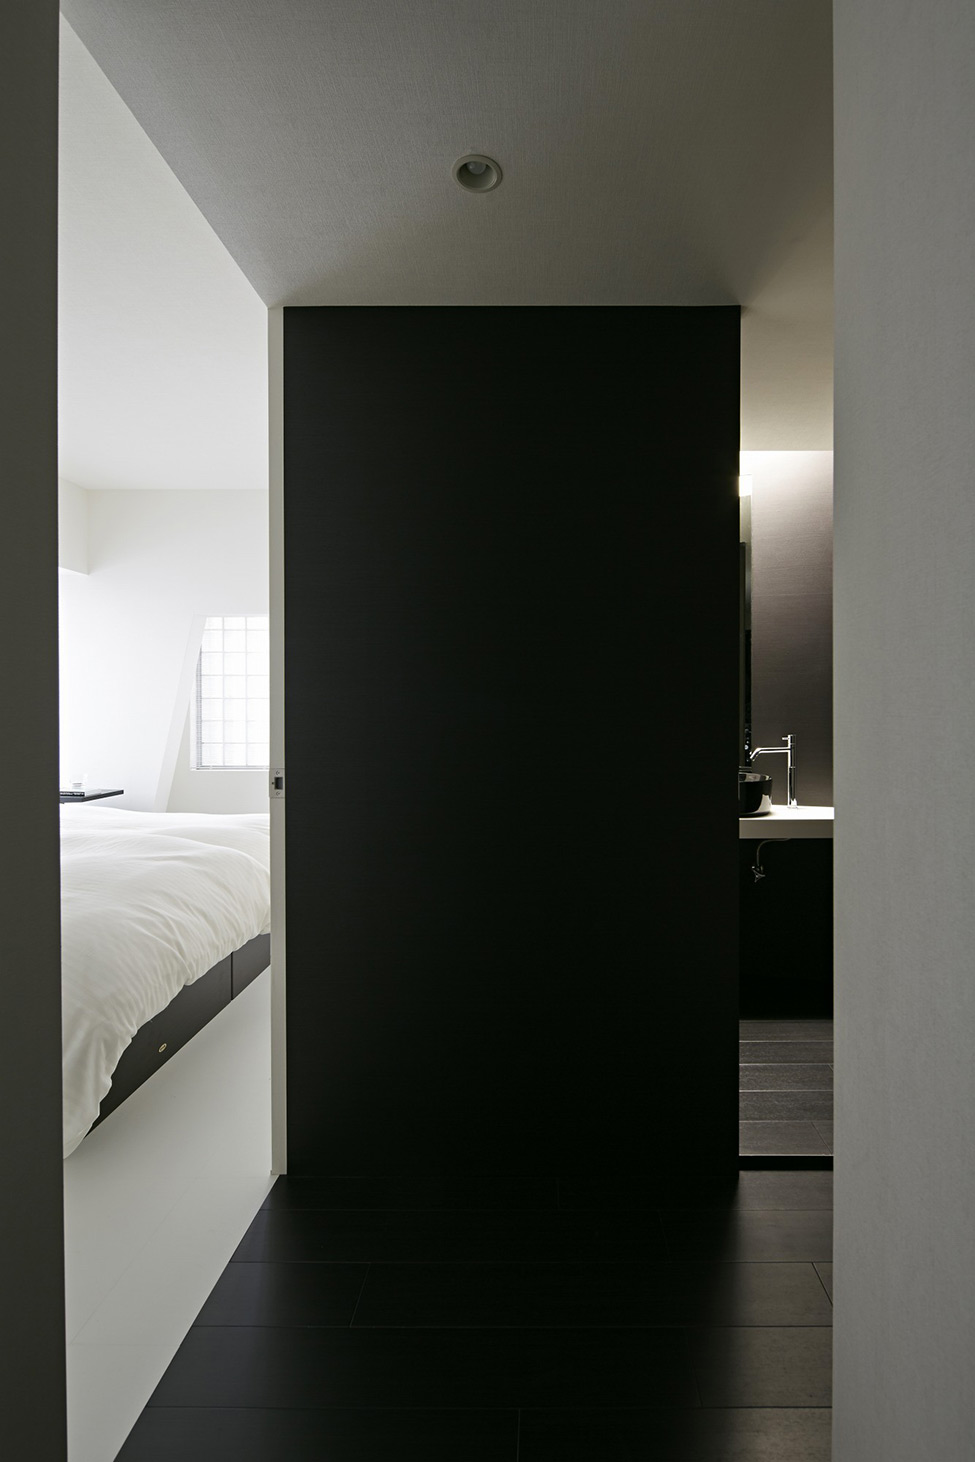 black and white apartment design in tokyo contemporary interior design minimalsit space clean lines edgy contemporary design clena space design  elegant finishes black accent wall